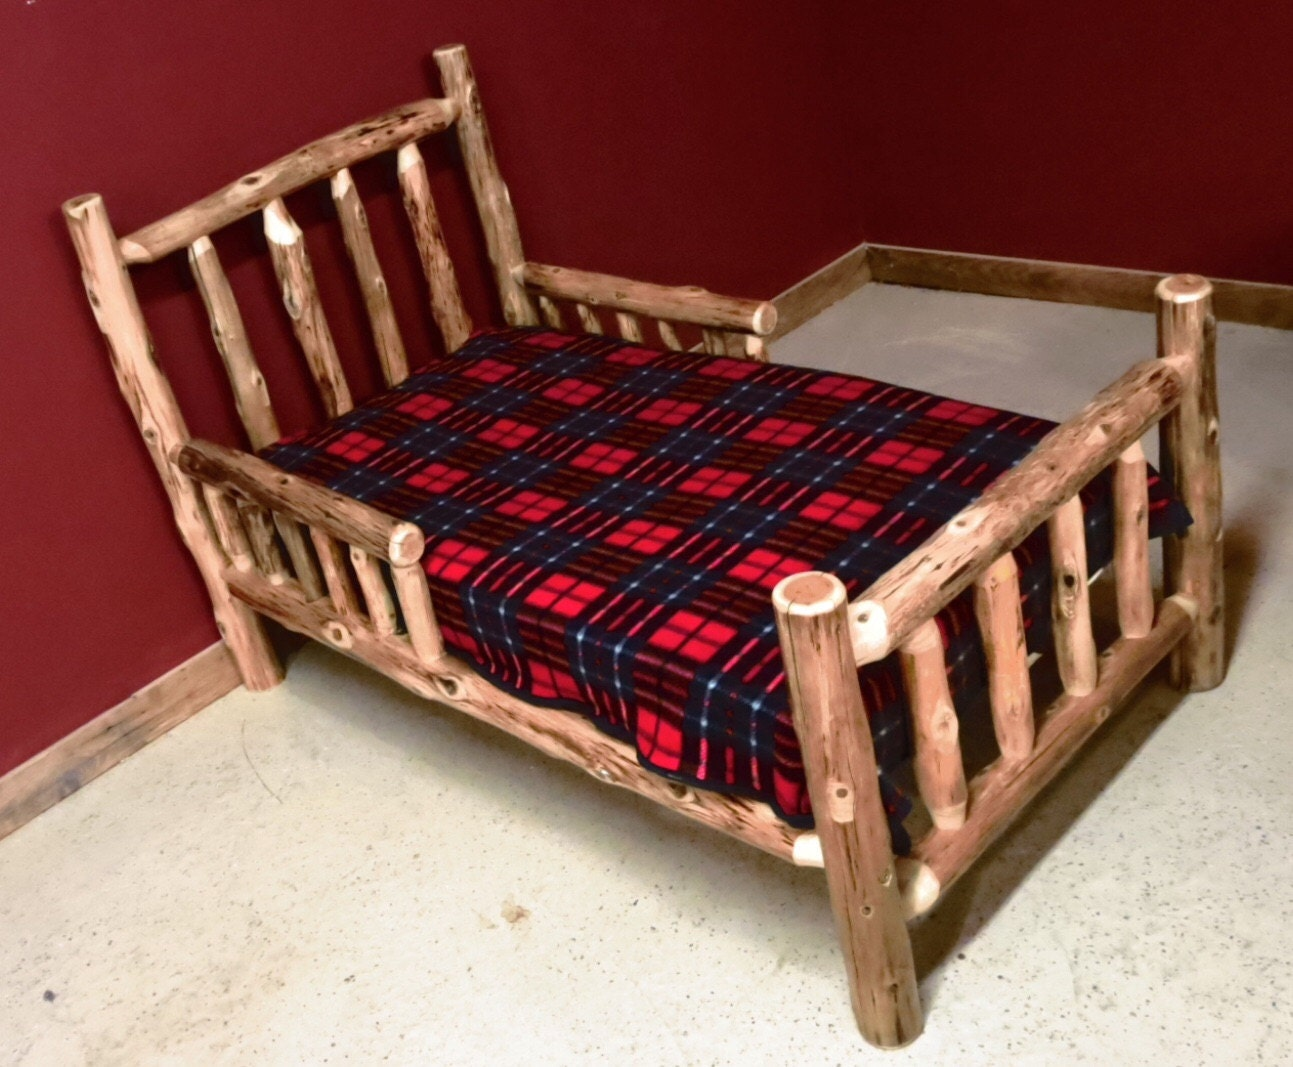 cedar log toddler bed with side rails. Black Bedroom Furniture Sets. Home Design Ideas